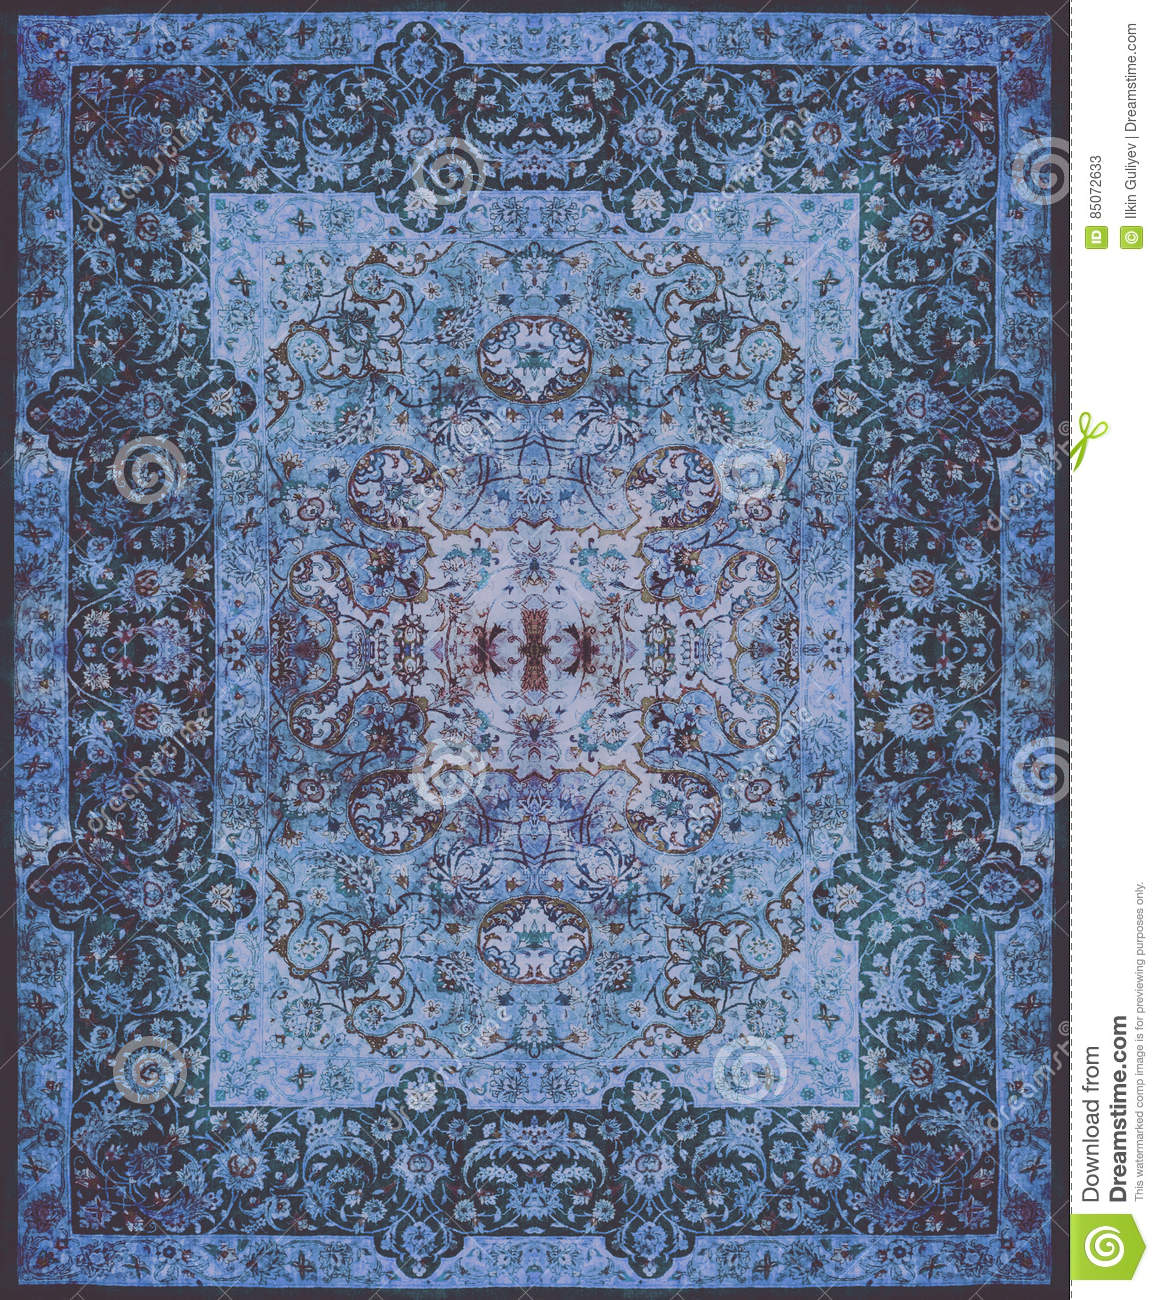 Royal Border Oriental Rug By Rug Culture: Persian Carpet Texture Stock Image